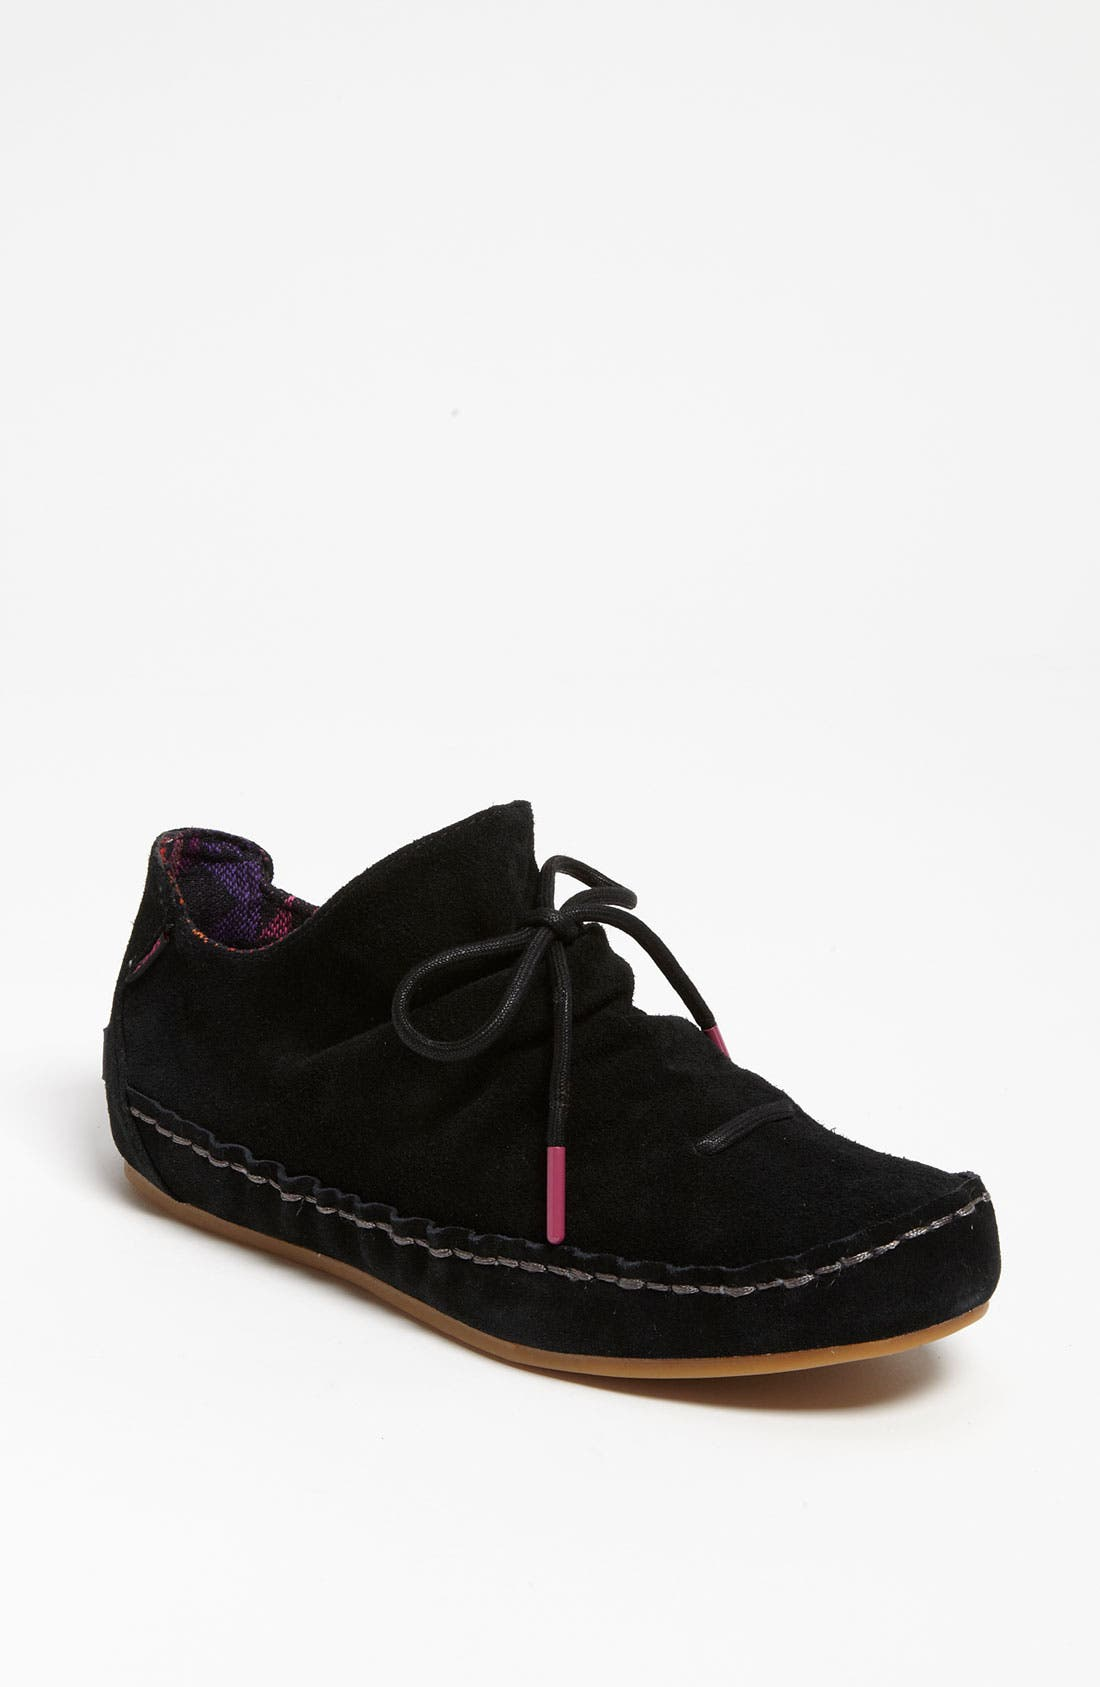 Alternate Image 1 Selected - Keds® 'Dorm Cozy' Bootie